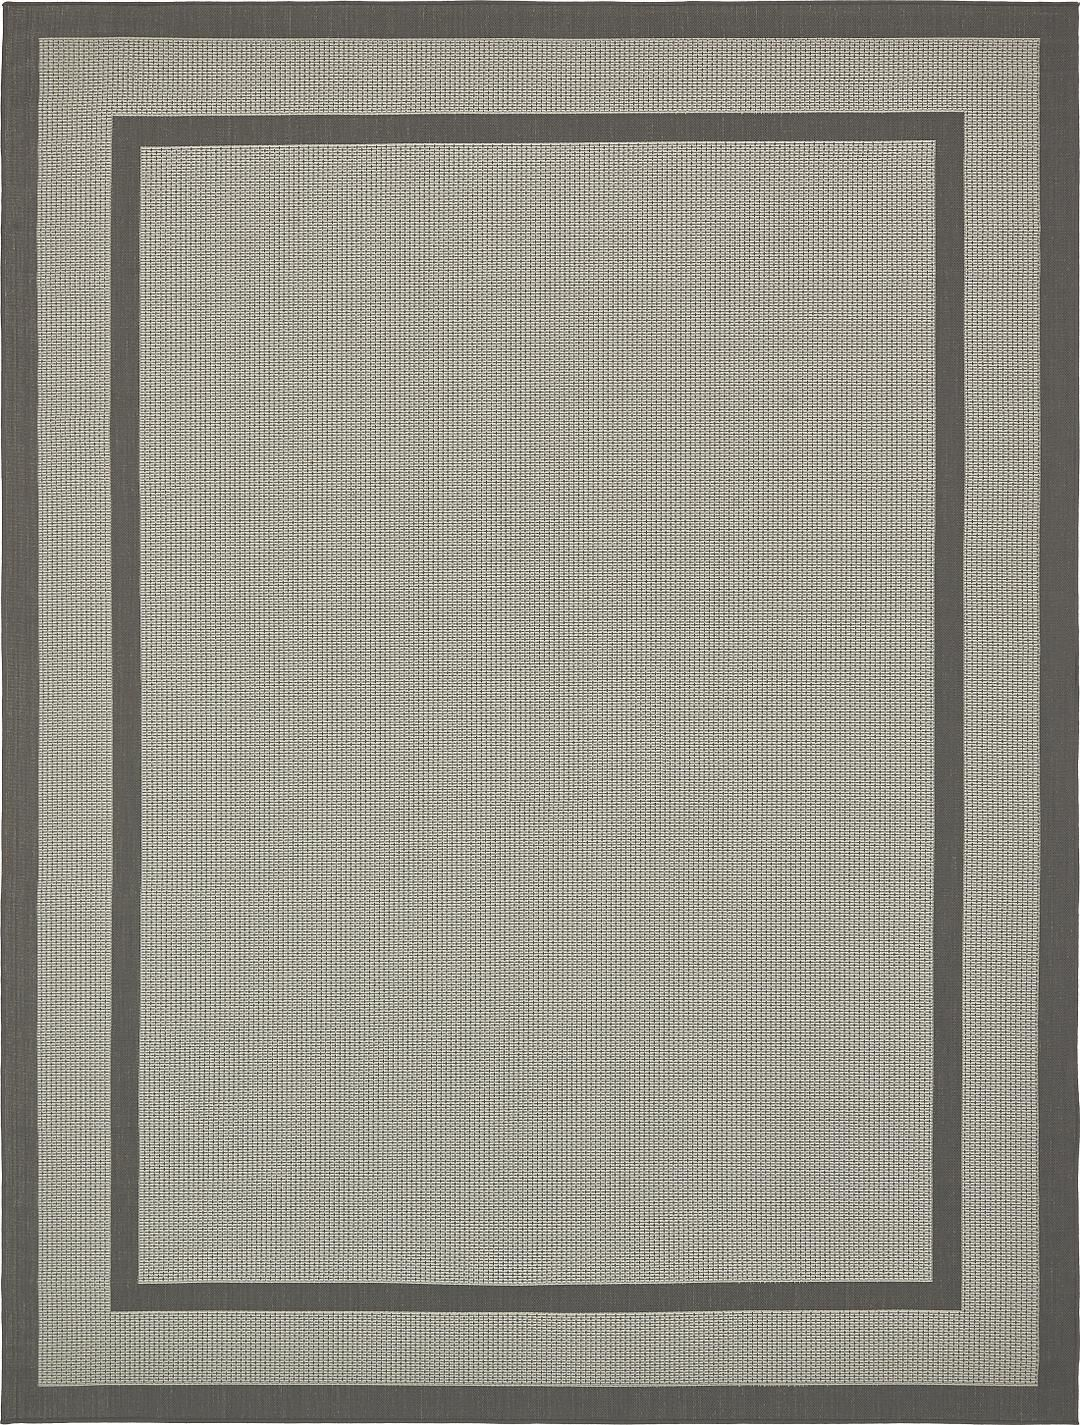 Gray 9' x 12' Outdoor Rug | Area Rugs | eSaleRugs